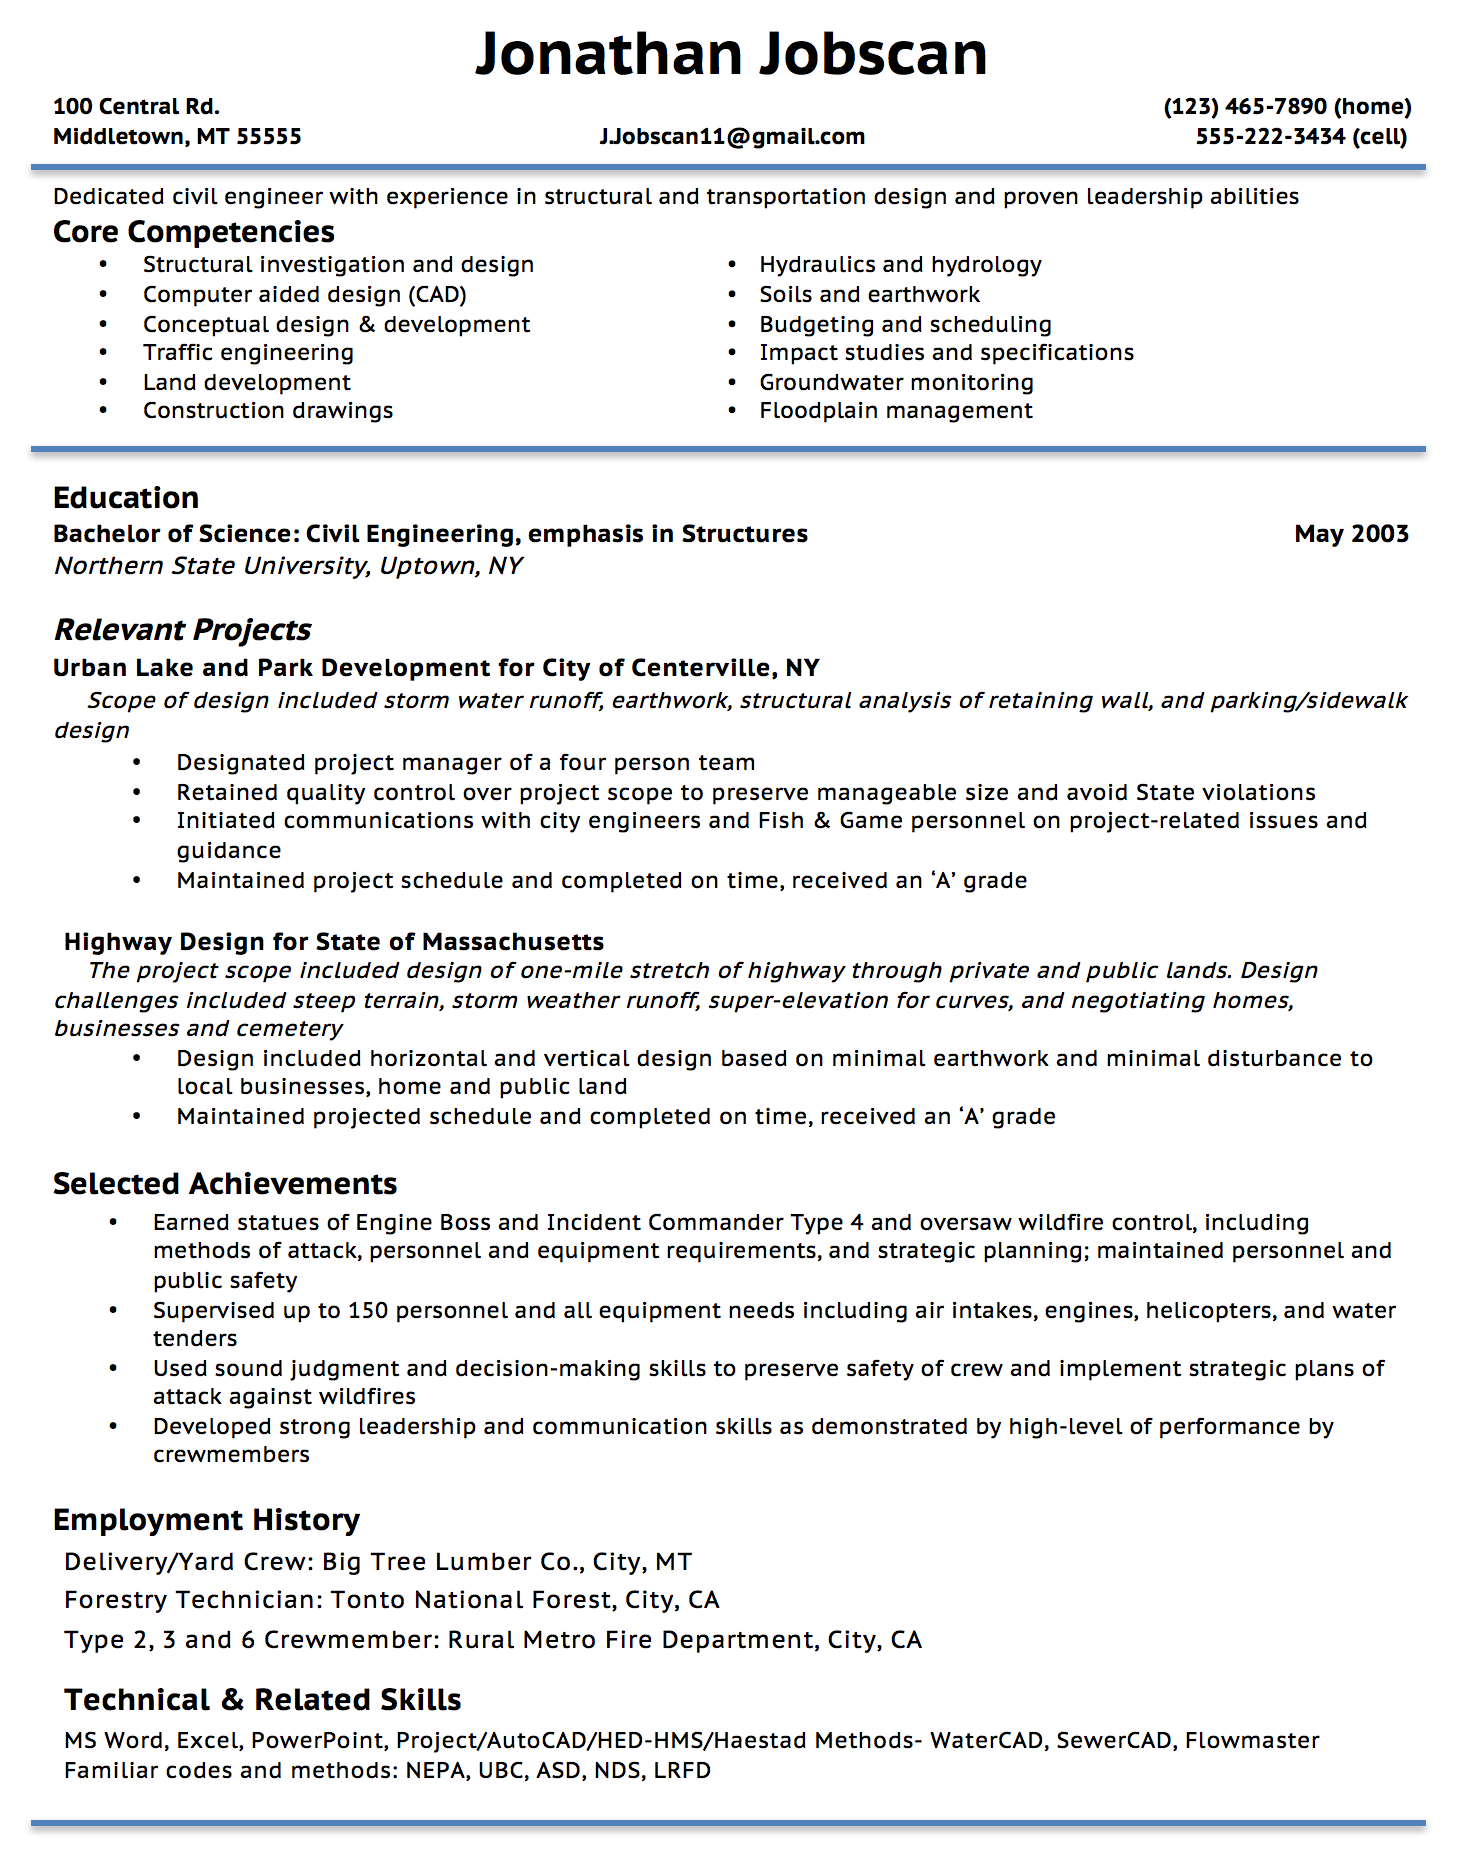 Opposenewapstandardsus  Scenic Resume Writing Guide  Jobscan With Fetching Example Of A Functional Resume Format With Beauteous Resume Skills And Abilities Example Also Sales And Marketing Resume In Addition Job Resume Template Word And Hotel General Manager Resume As Well As Special Skills Acting Resume Additionally My Professional Resume From Jobscanco With Opposenewapstandardsus  Fetching Resume Writing Guide  Jobscan With Beauteous Example Of A Functional Resume Format And Scenic Resume Skills And Abilities Example Also Sales And Marketing Resume In Addition Job Resume Template Word From Jobscanco